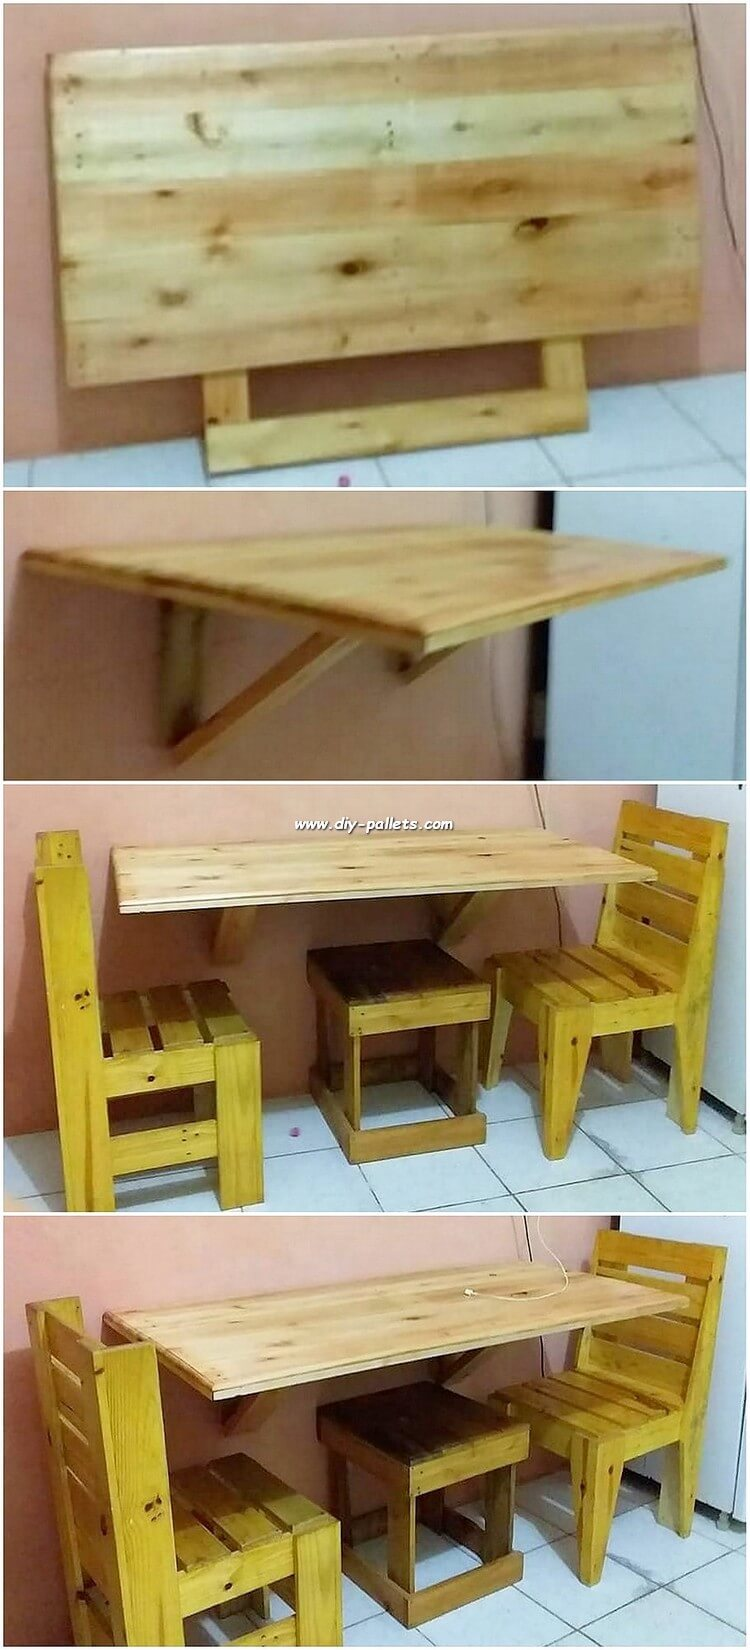 Pallet Folding Table and Chairs